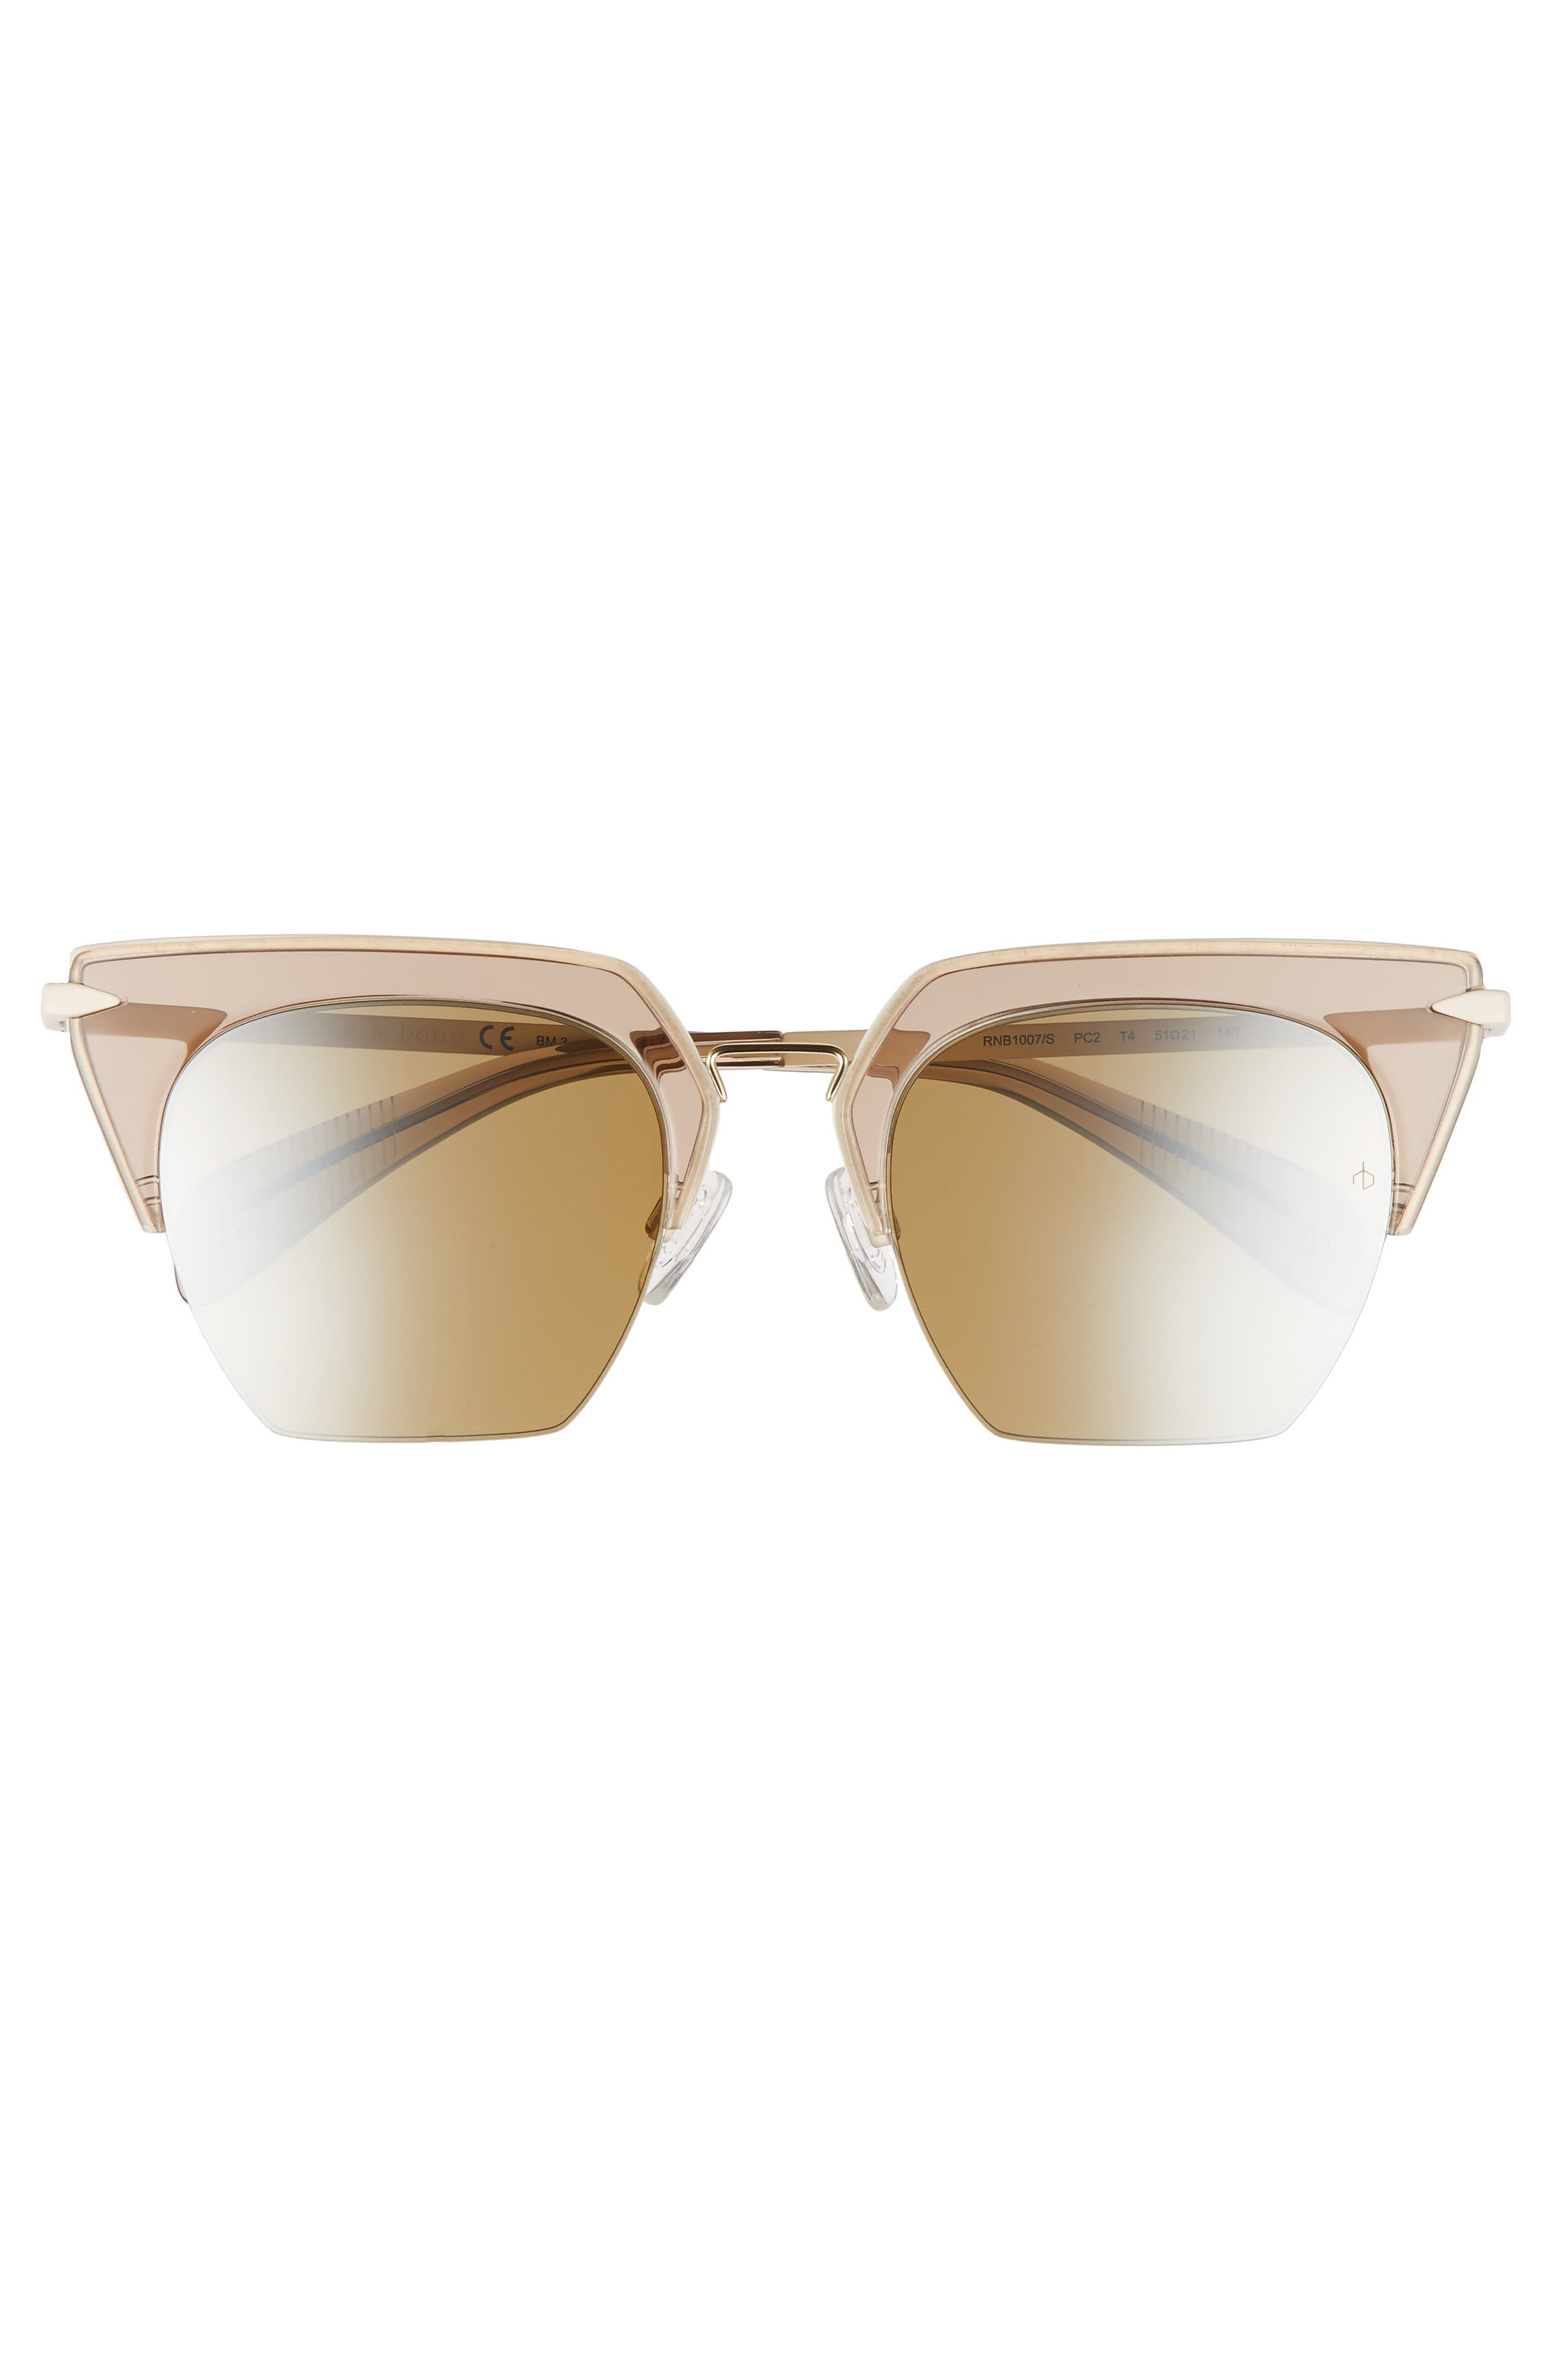 51mm Cat Eye Sunglasses,                             Alternate thumbnail 3, color,                             OPAL BROWN